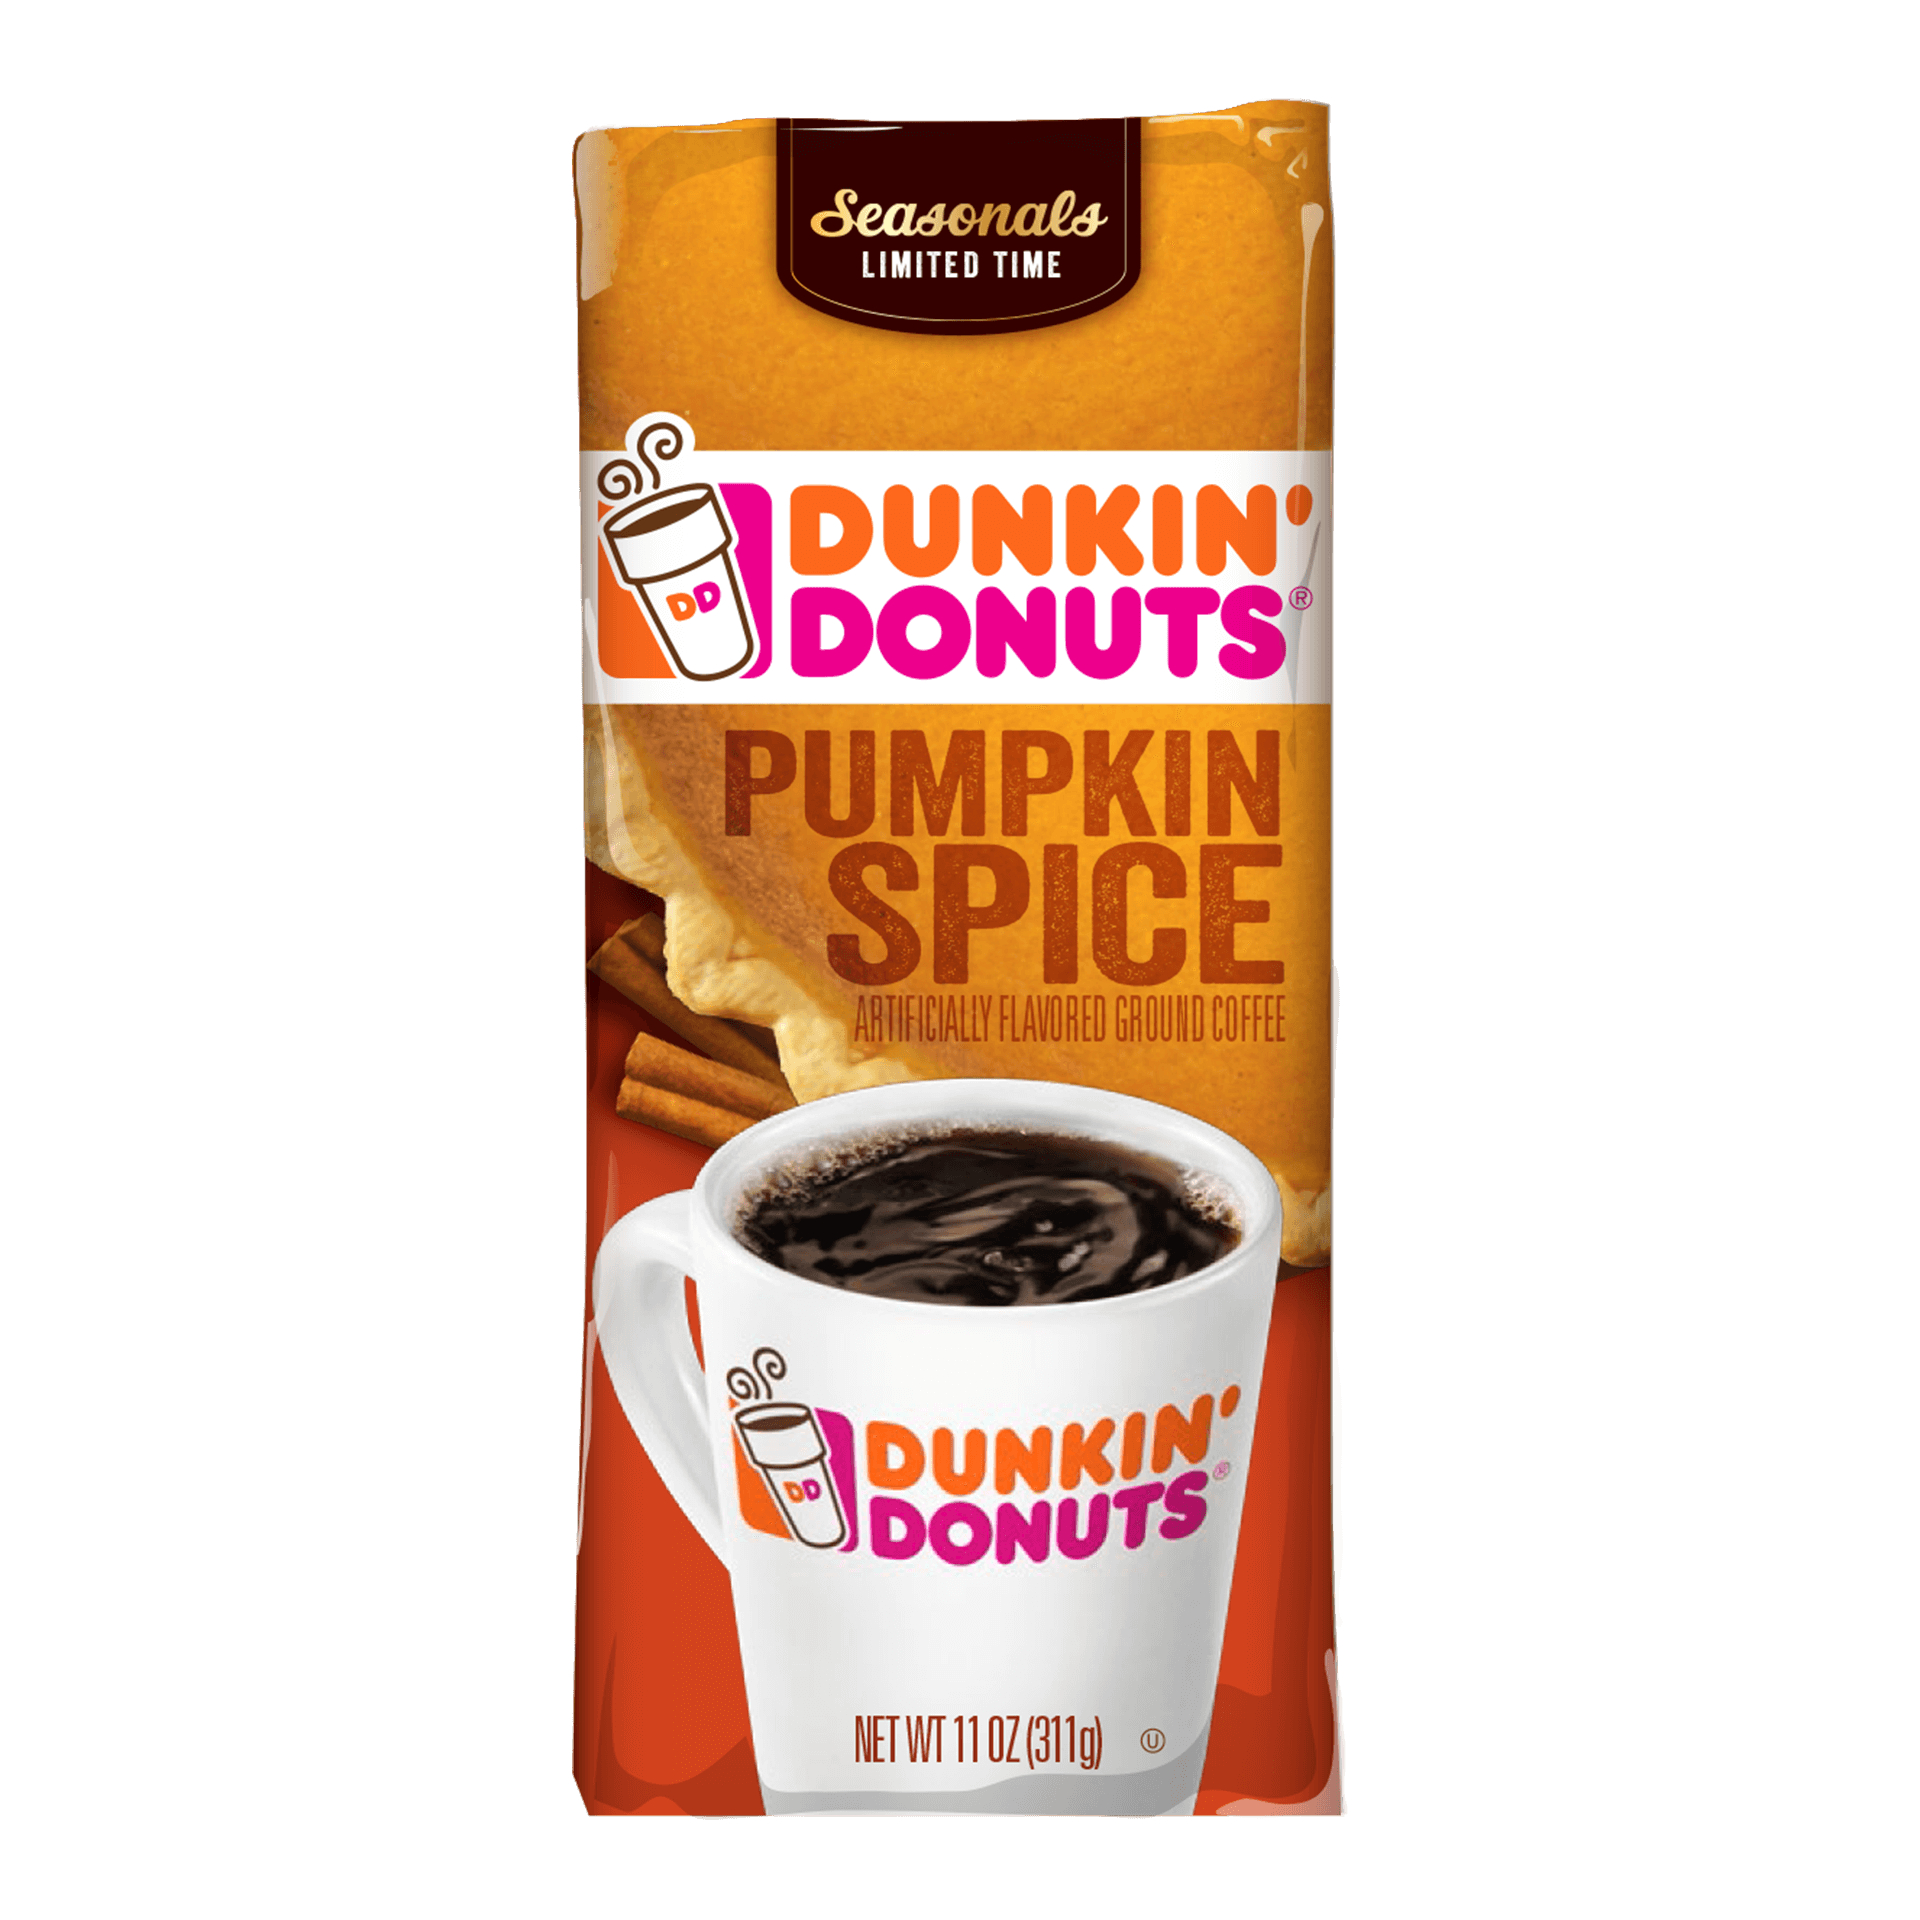 Find Dunkin Donuts pumpkin spice coffee near you. Use it